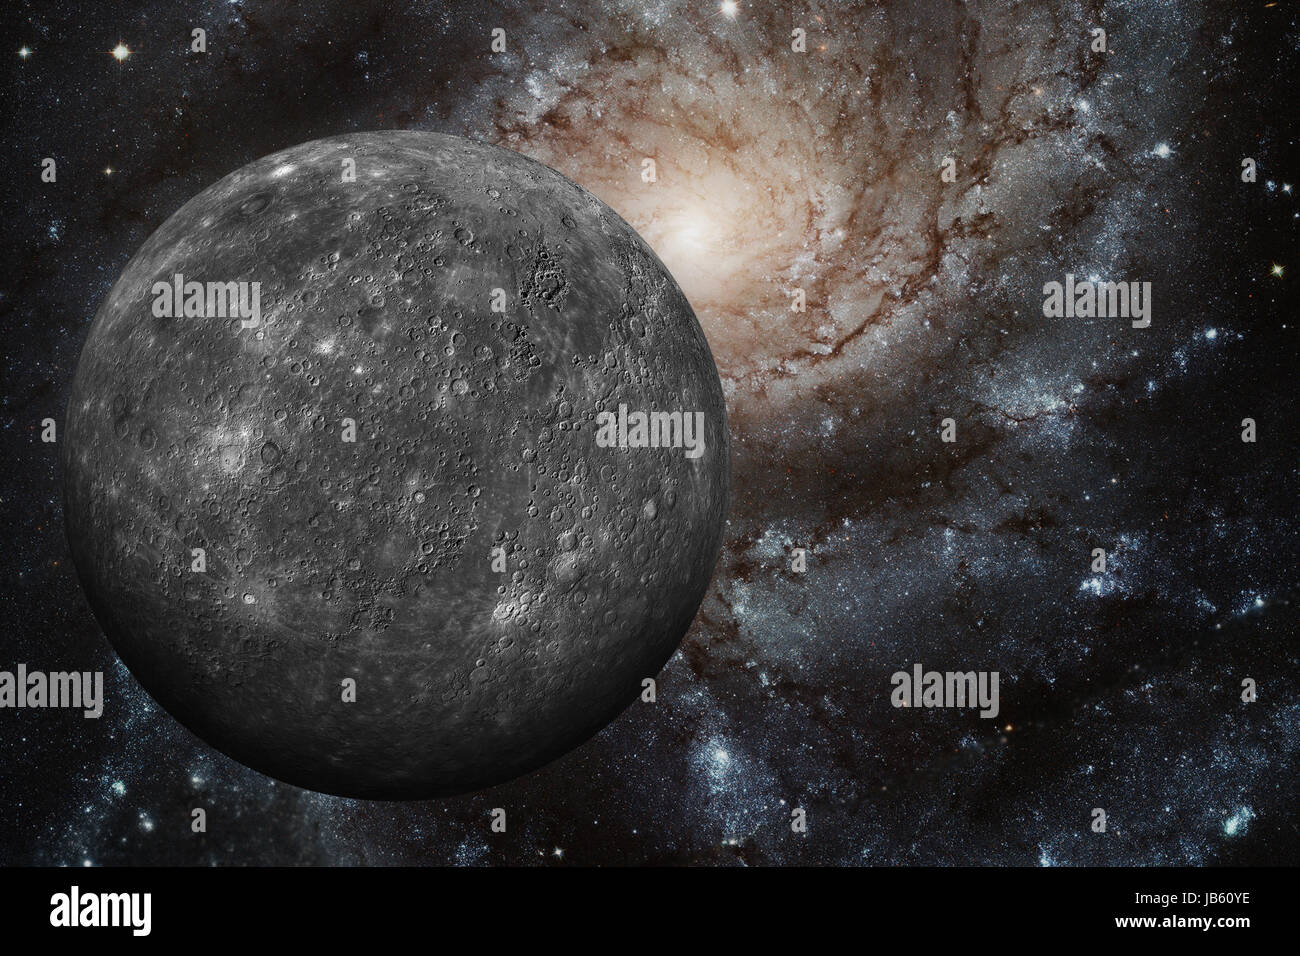 Solar System - Mercury. It is the smallest and closest to the Sun of the eight planets in the Solar System, with - Stock Image